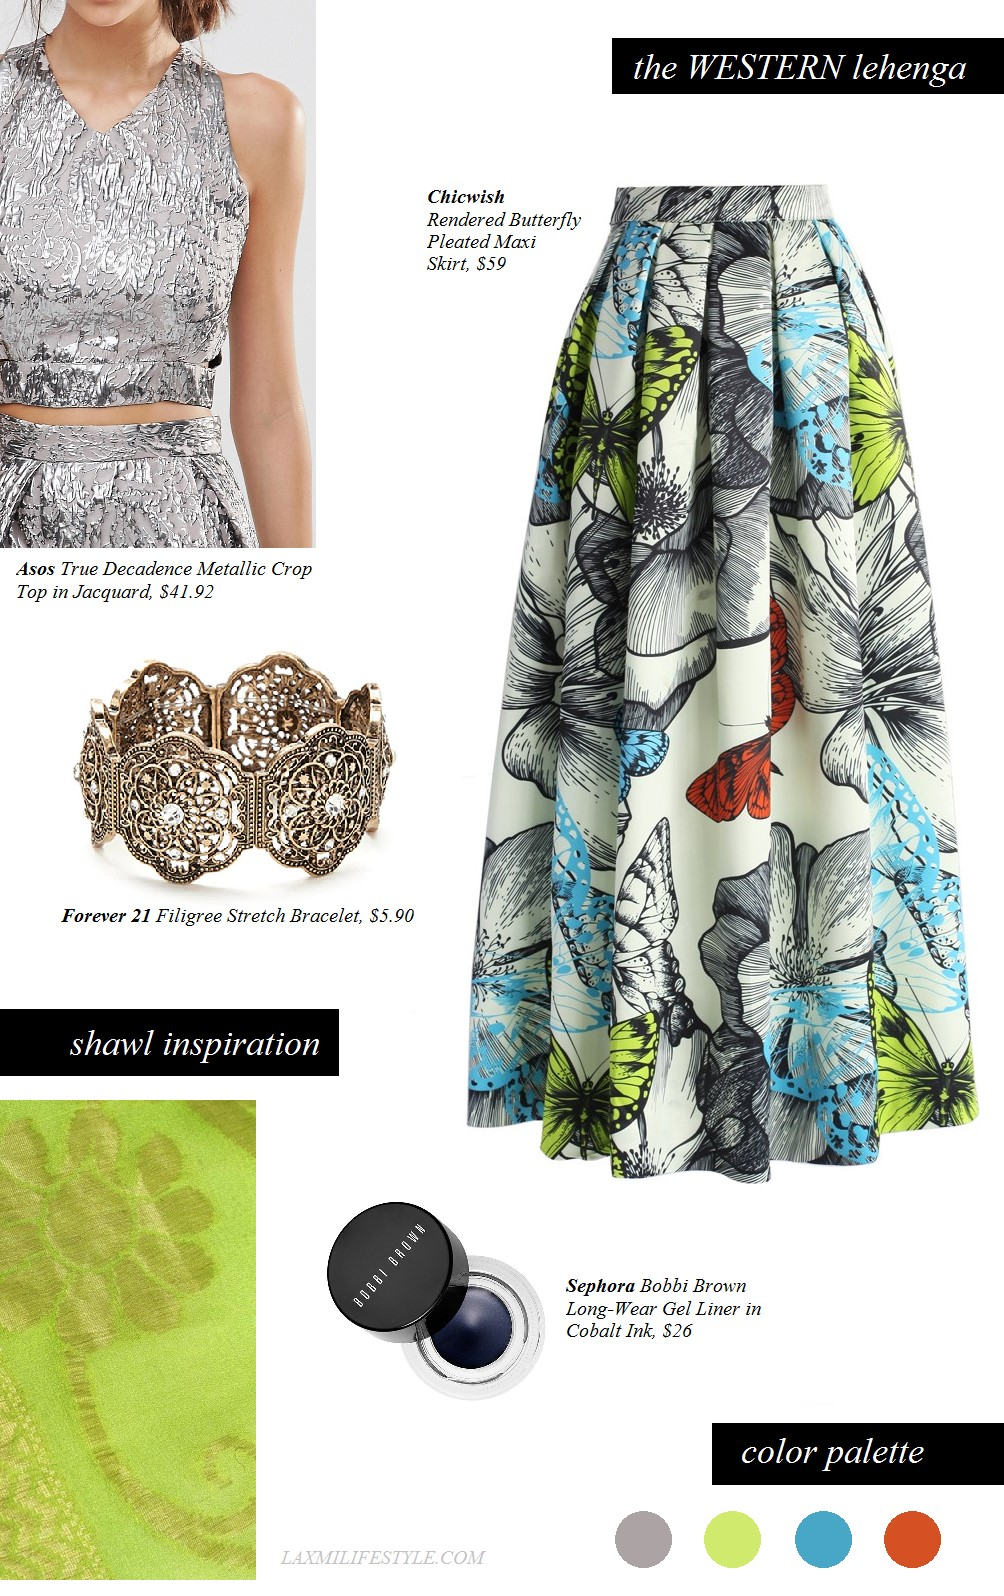 TOP   Asos  /  SKIRT   Chicwish  /  BRACELET :  Forever 21  /  KOHL :  Sephora